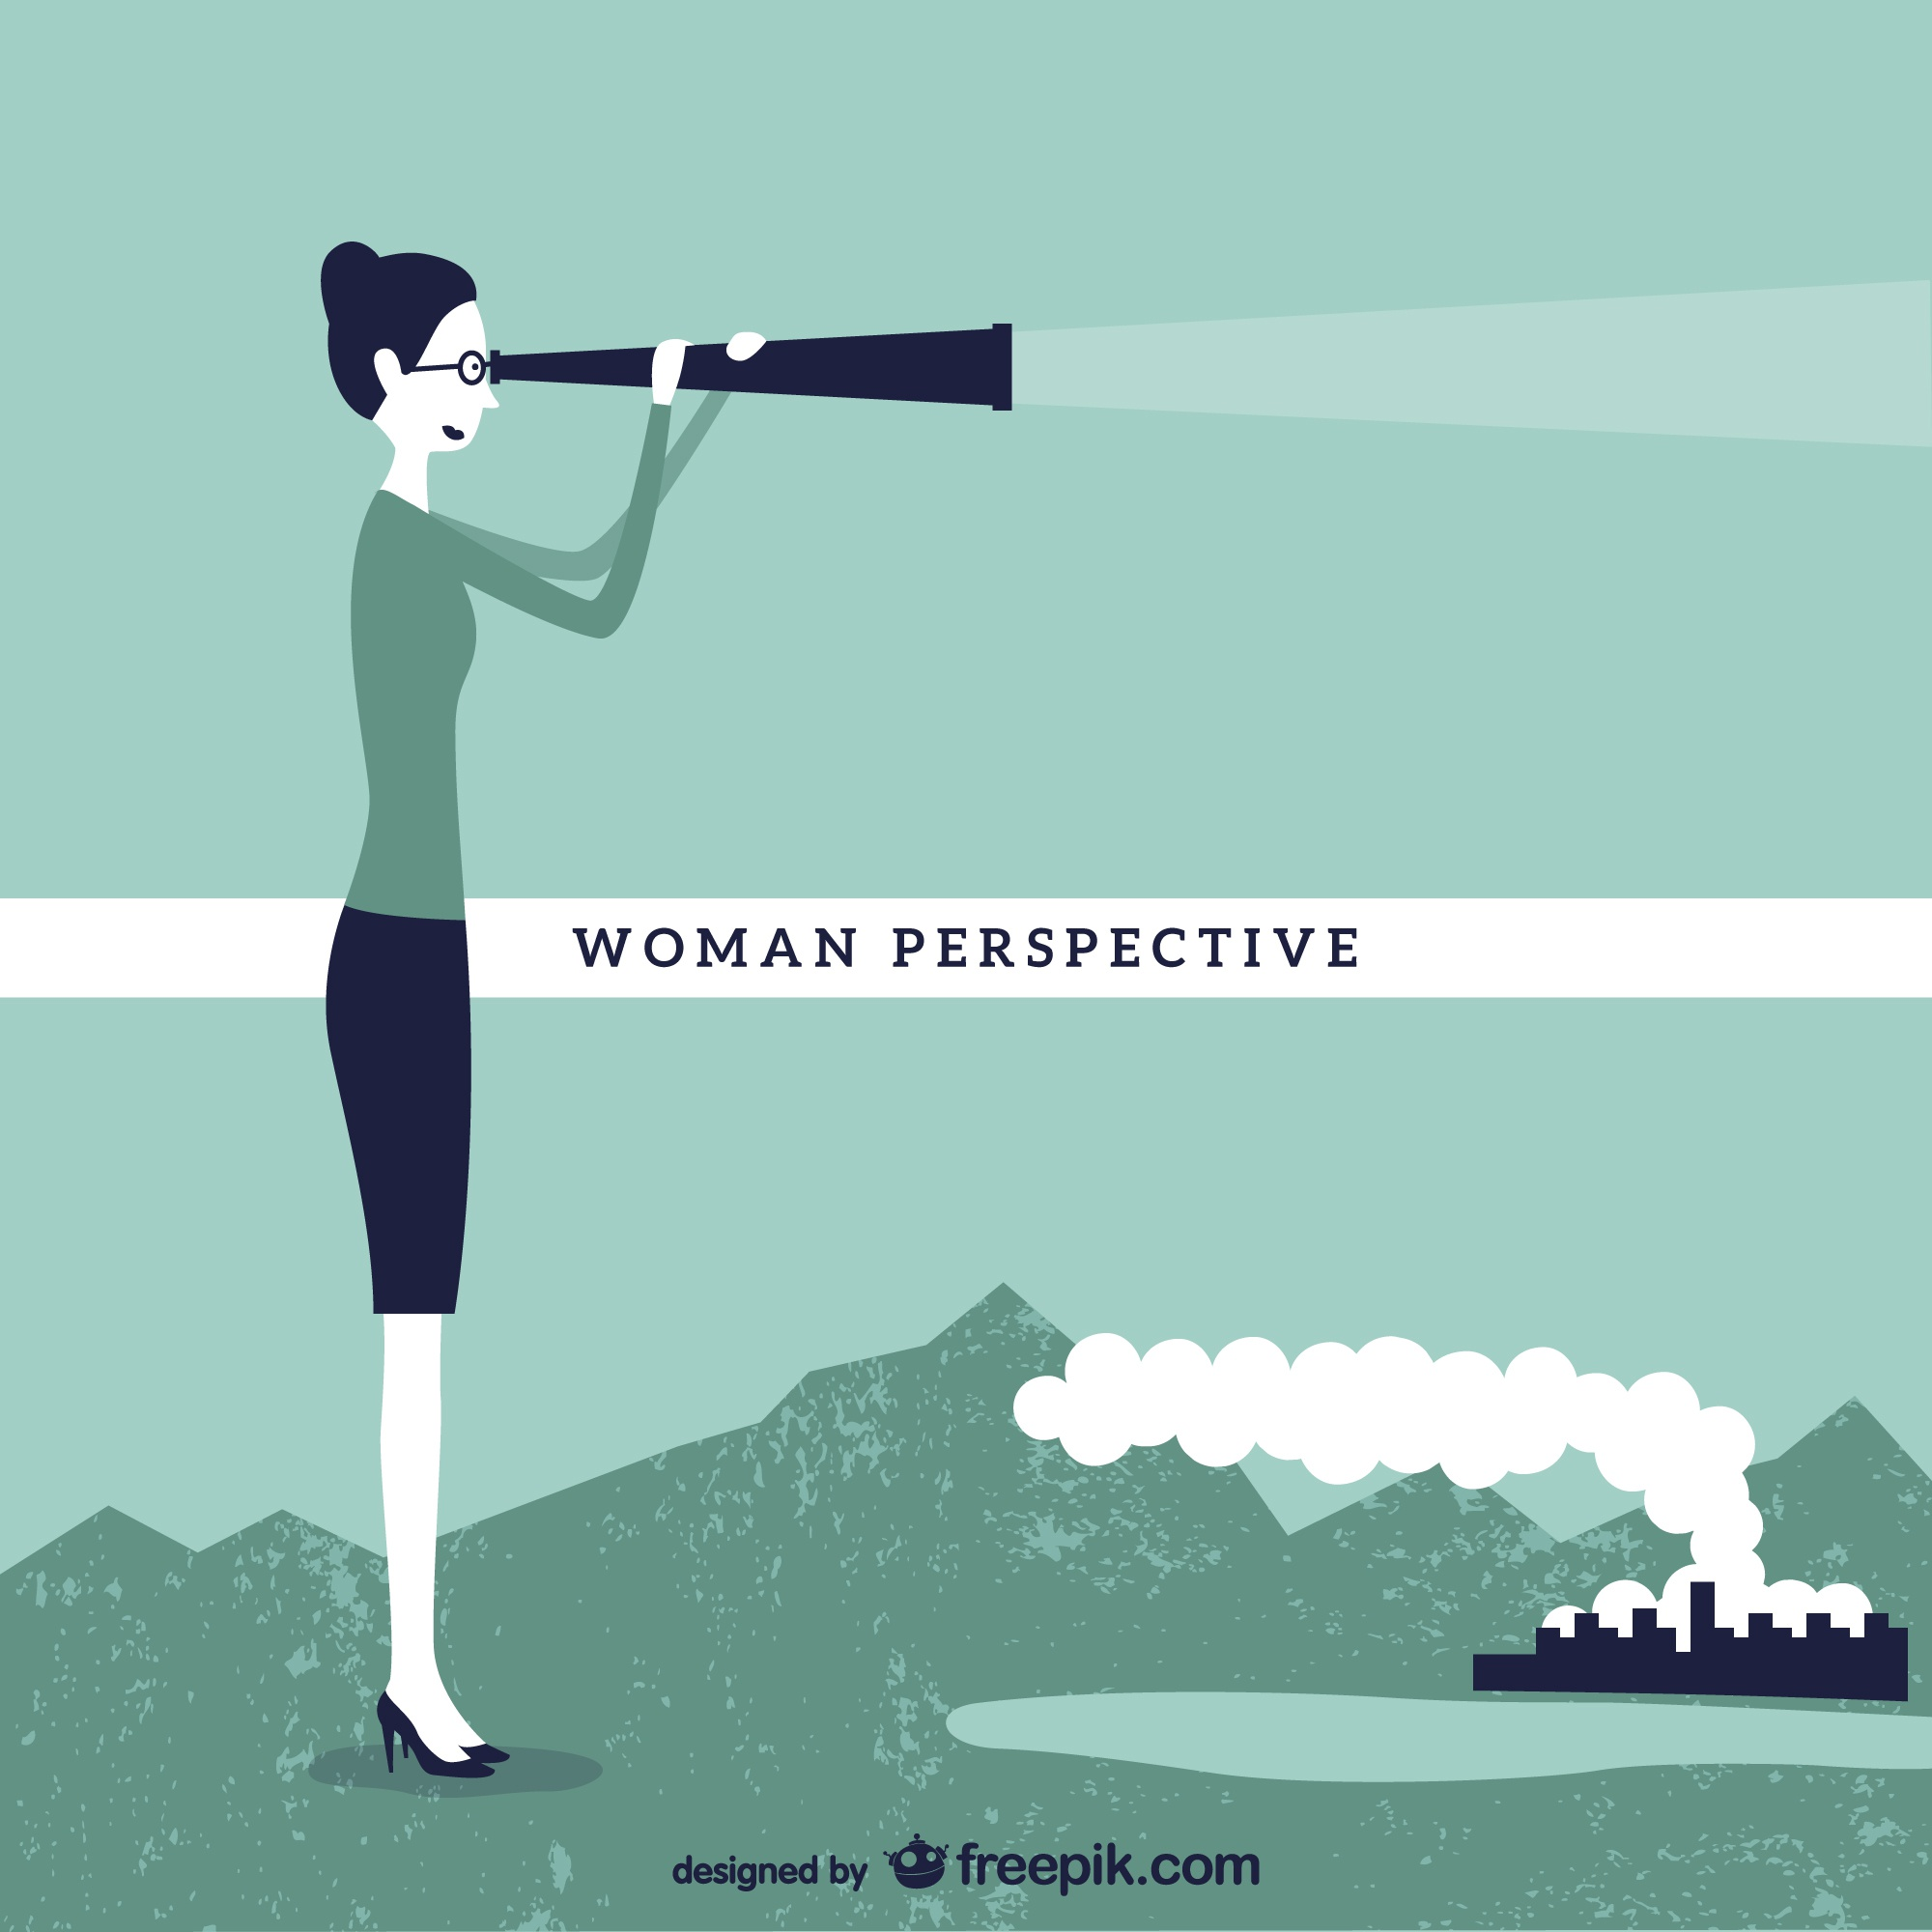 Woman's perspective concept design